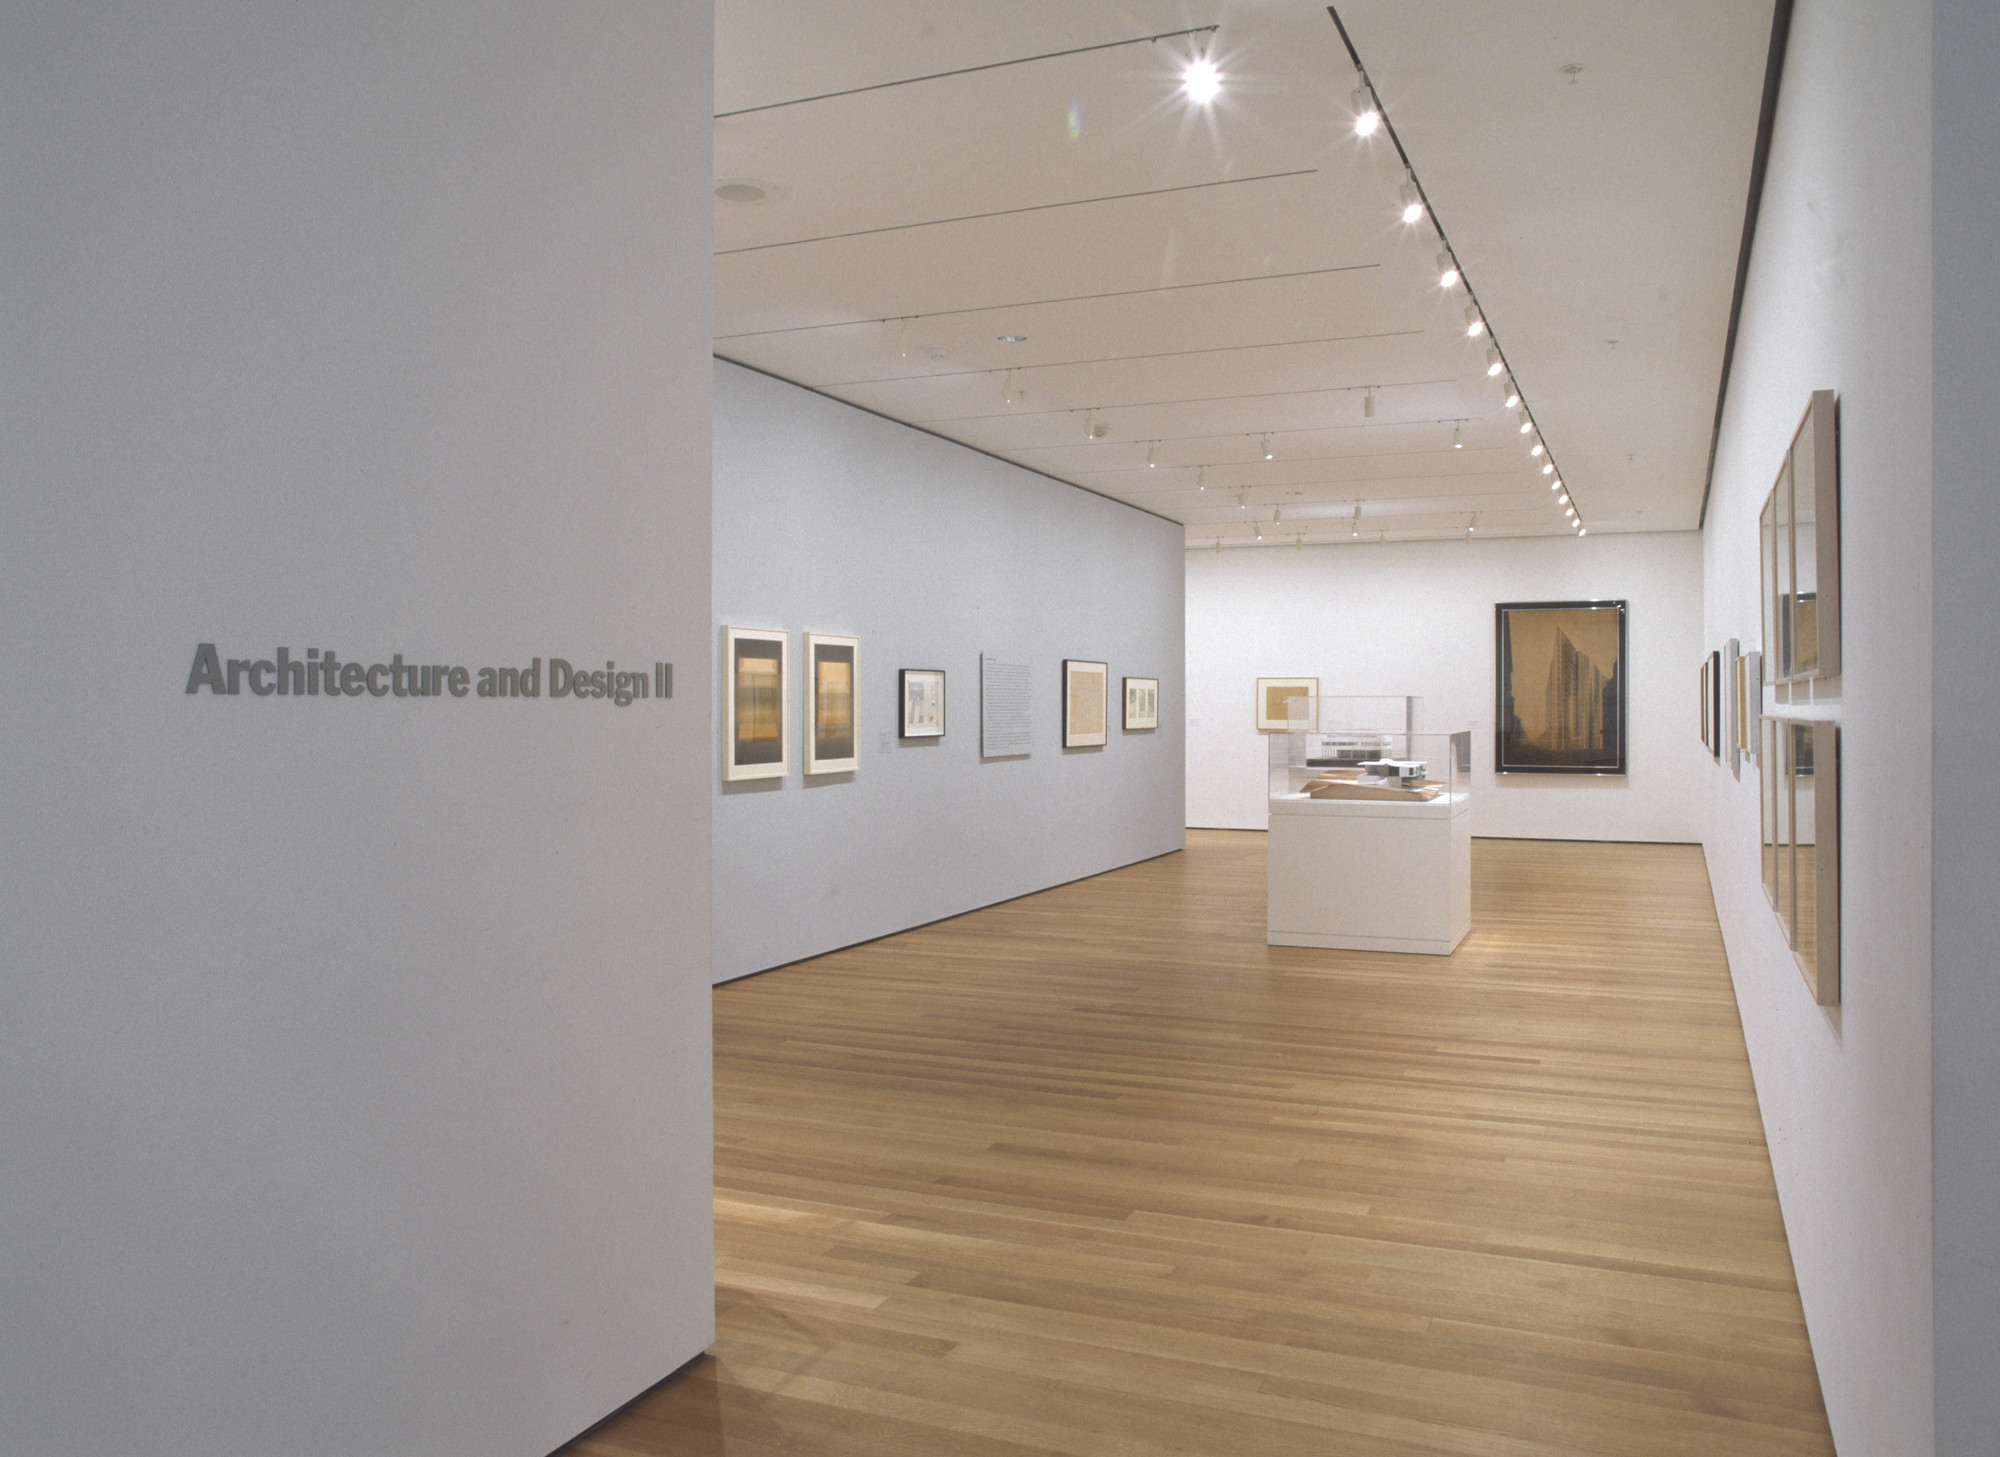 "Installation view of the exhibition, ""Architecture and Design:  Inaugural Installation"" November 20, 2004–March 21, 2005. Photographic Archives. The Museum of Modern Art Archives, New York. IN1926.1. Photograph by Thomas Griesel."